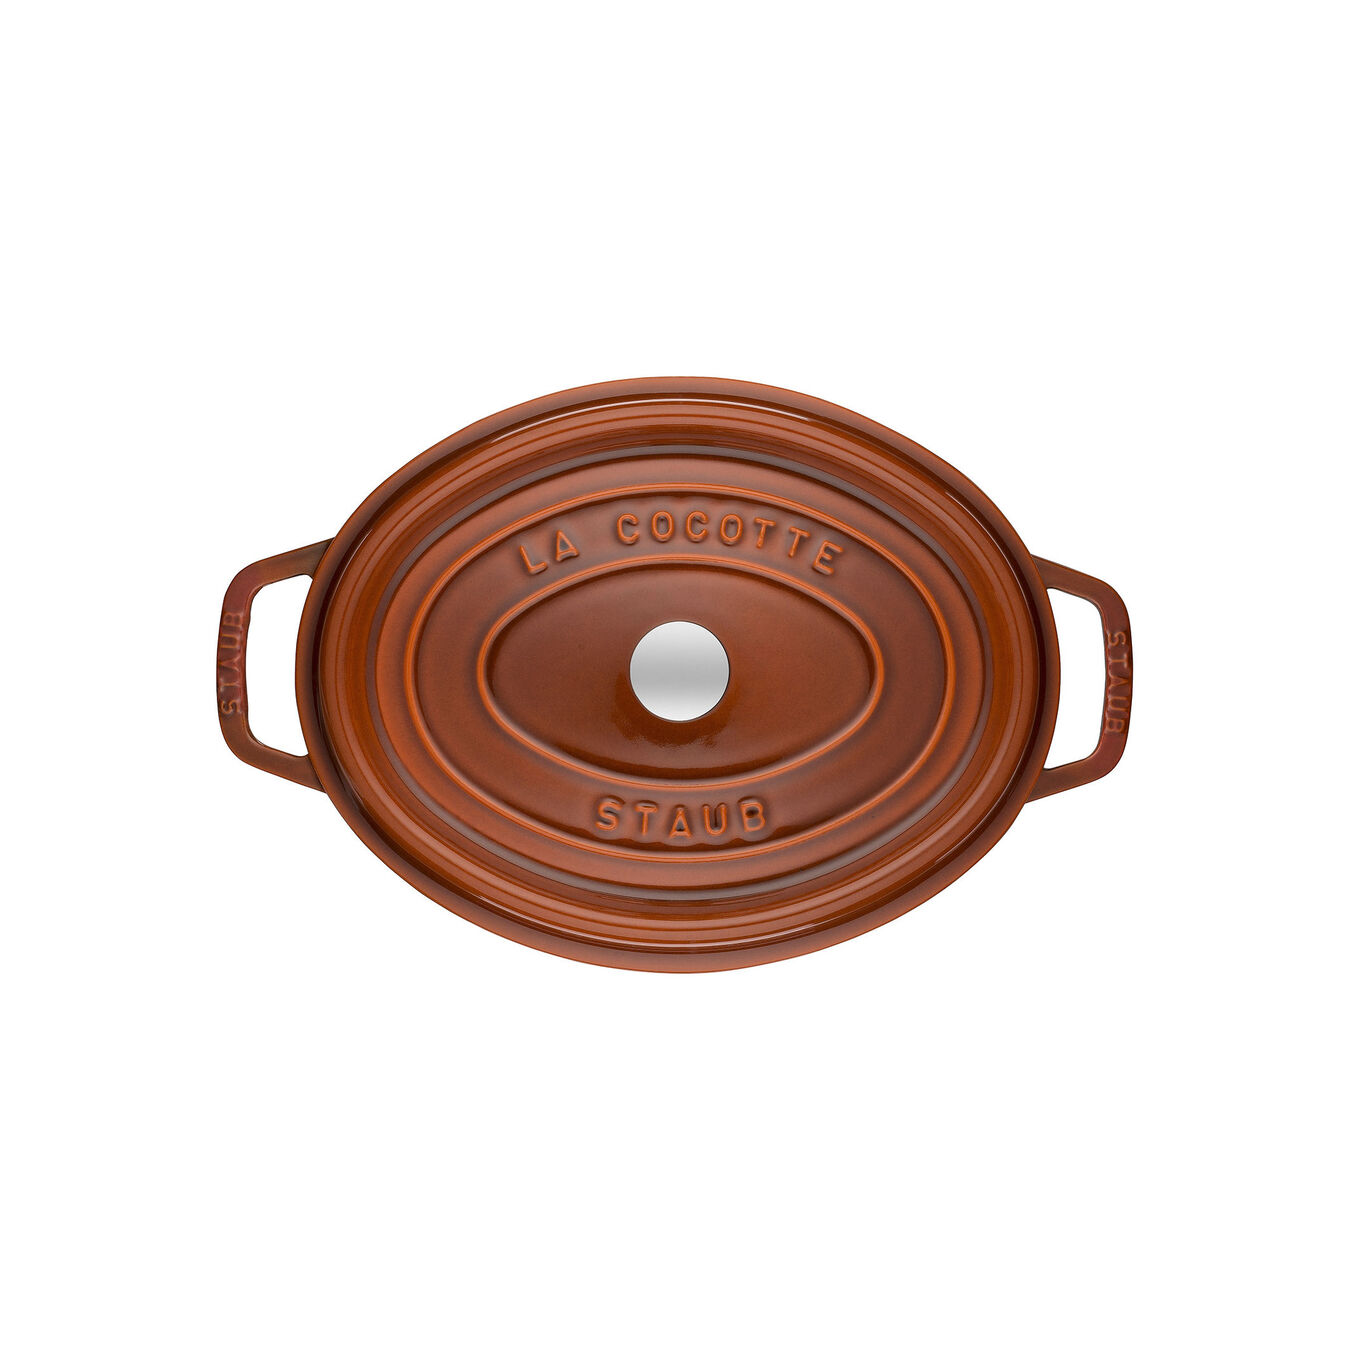 Cocotte ovale - 29 cm, cannella,,large 4